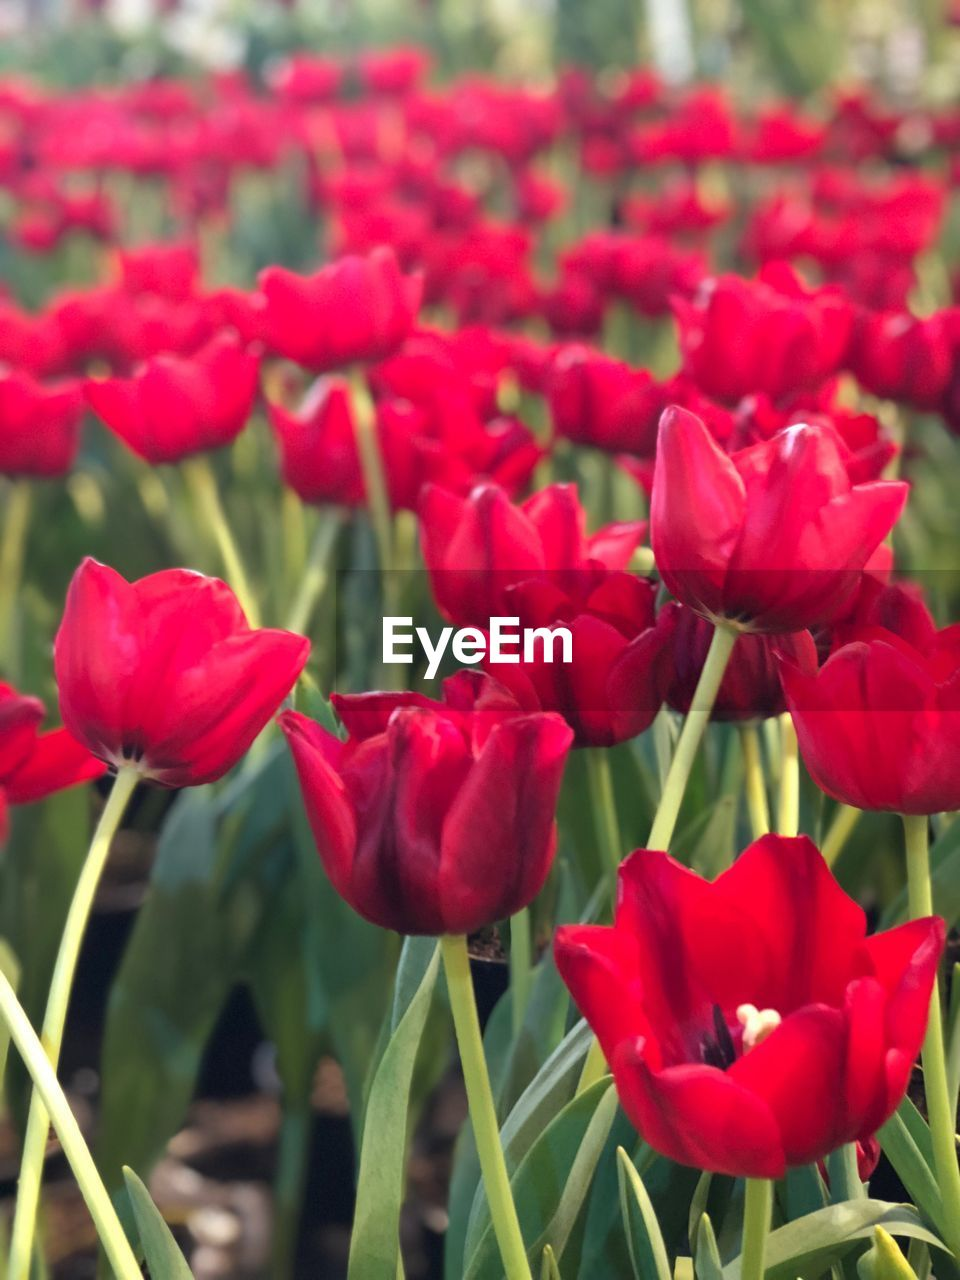 flowering plant, flower, plant, beauty in nature, freshness, fragility, vulnerability, petal, red, growth, close-up, tulip, inflorescence, flower head, nature, field, day, plant stem, land, no people, outdoors, flowerbed, spring